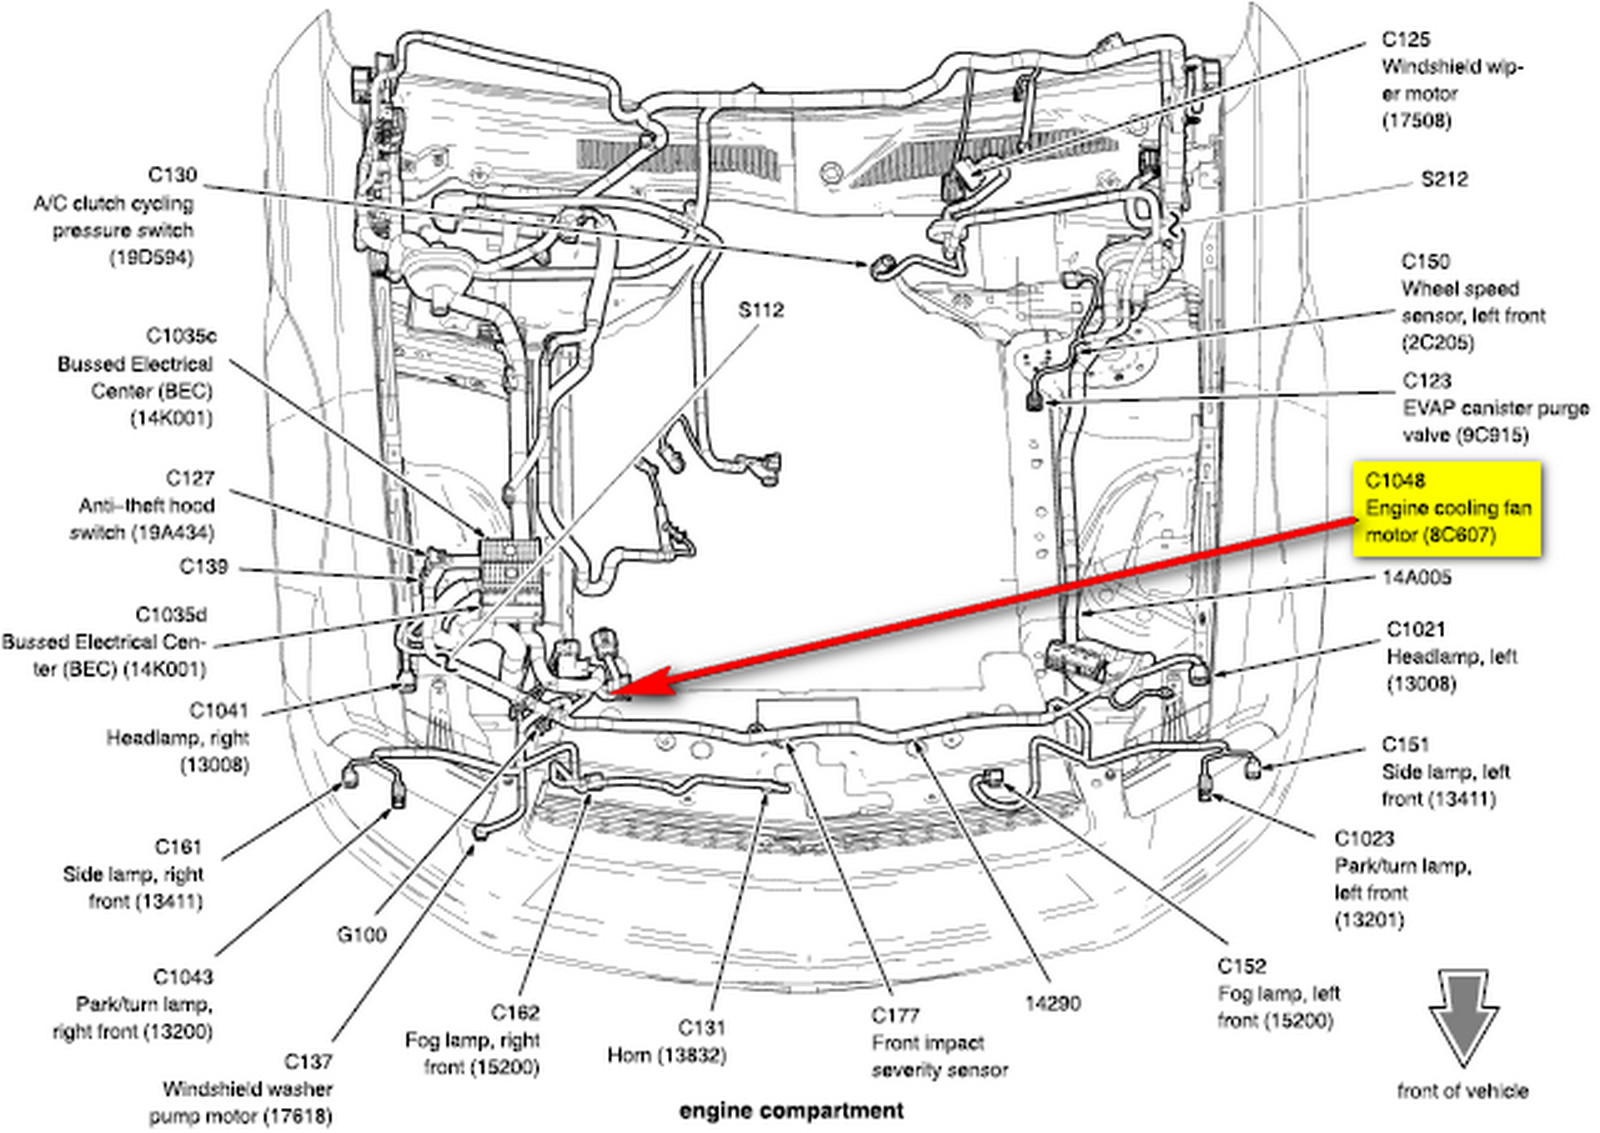 ford mustang 30 amp wiring diagram 2003 ford free engine image for user manual download. Black Bedroom Furniture Sets. Home Design Ideas